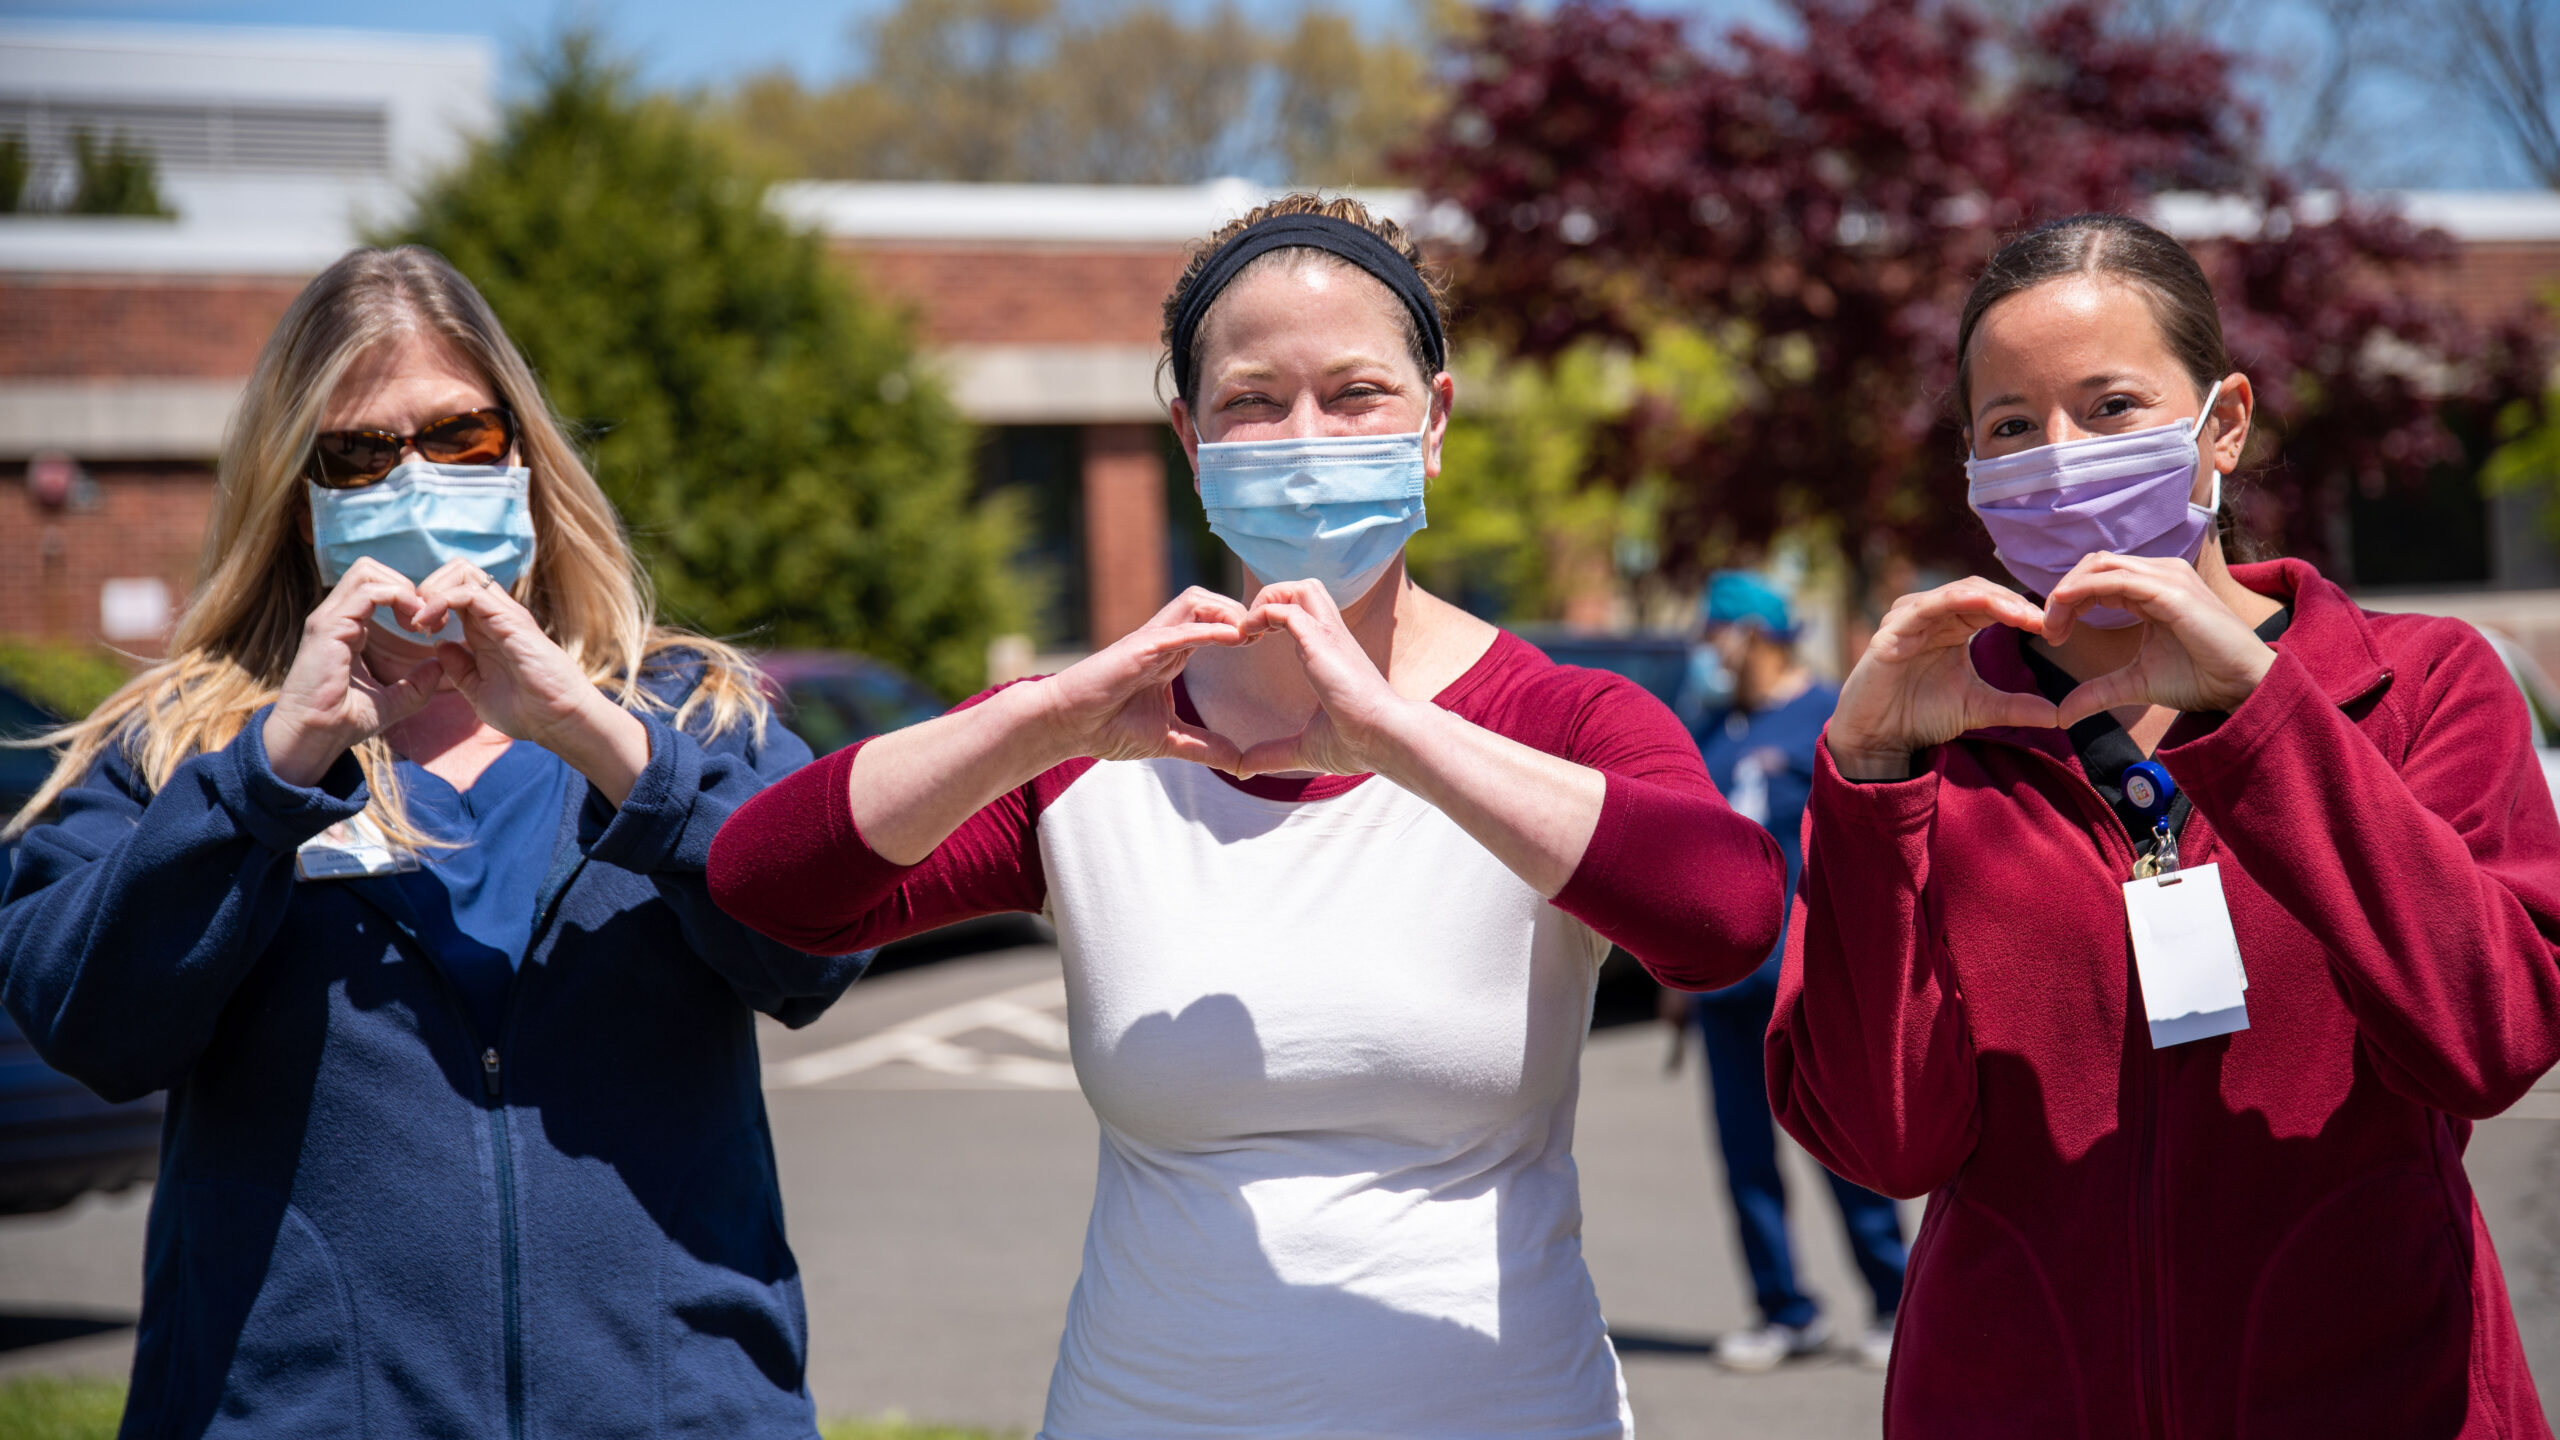 Three women stand together outdoors. They are wearing medical masks and face the camera, holding the hands in heart shapes towards the camera.